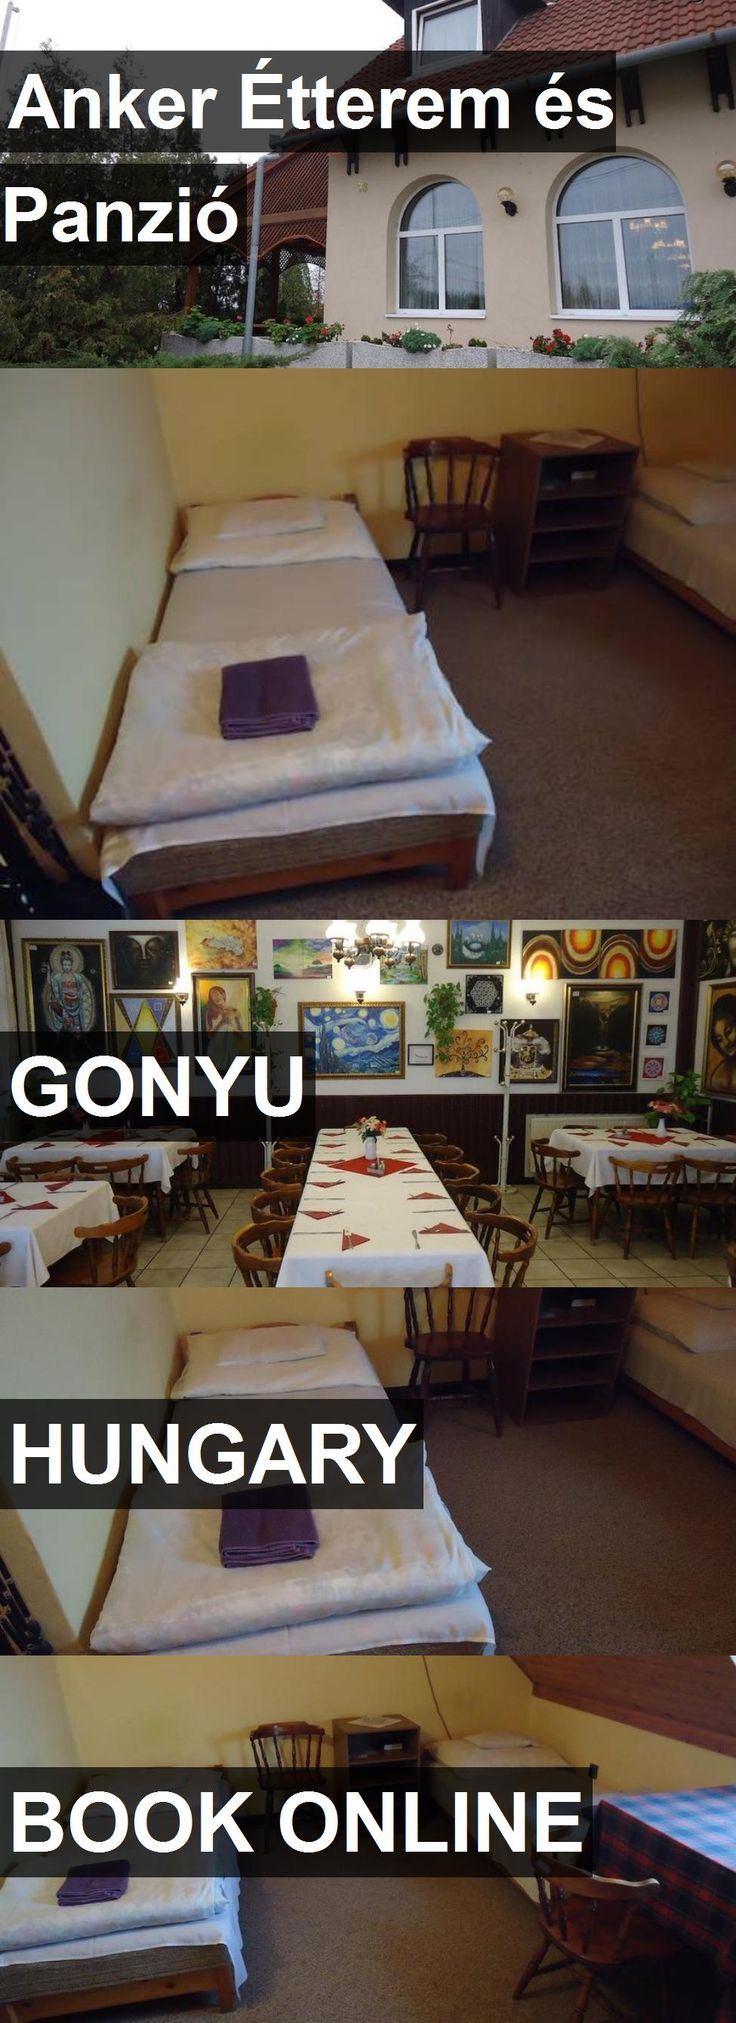 Hotel Anker Étterem és Panzió in Gonyu, Hungary. For more information, photos, reviews and best prices please follow the link. #Hungary #Gonyu #travel #vacation #hotel